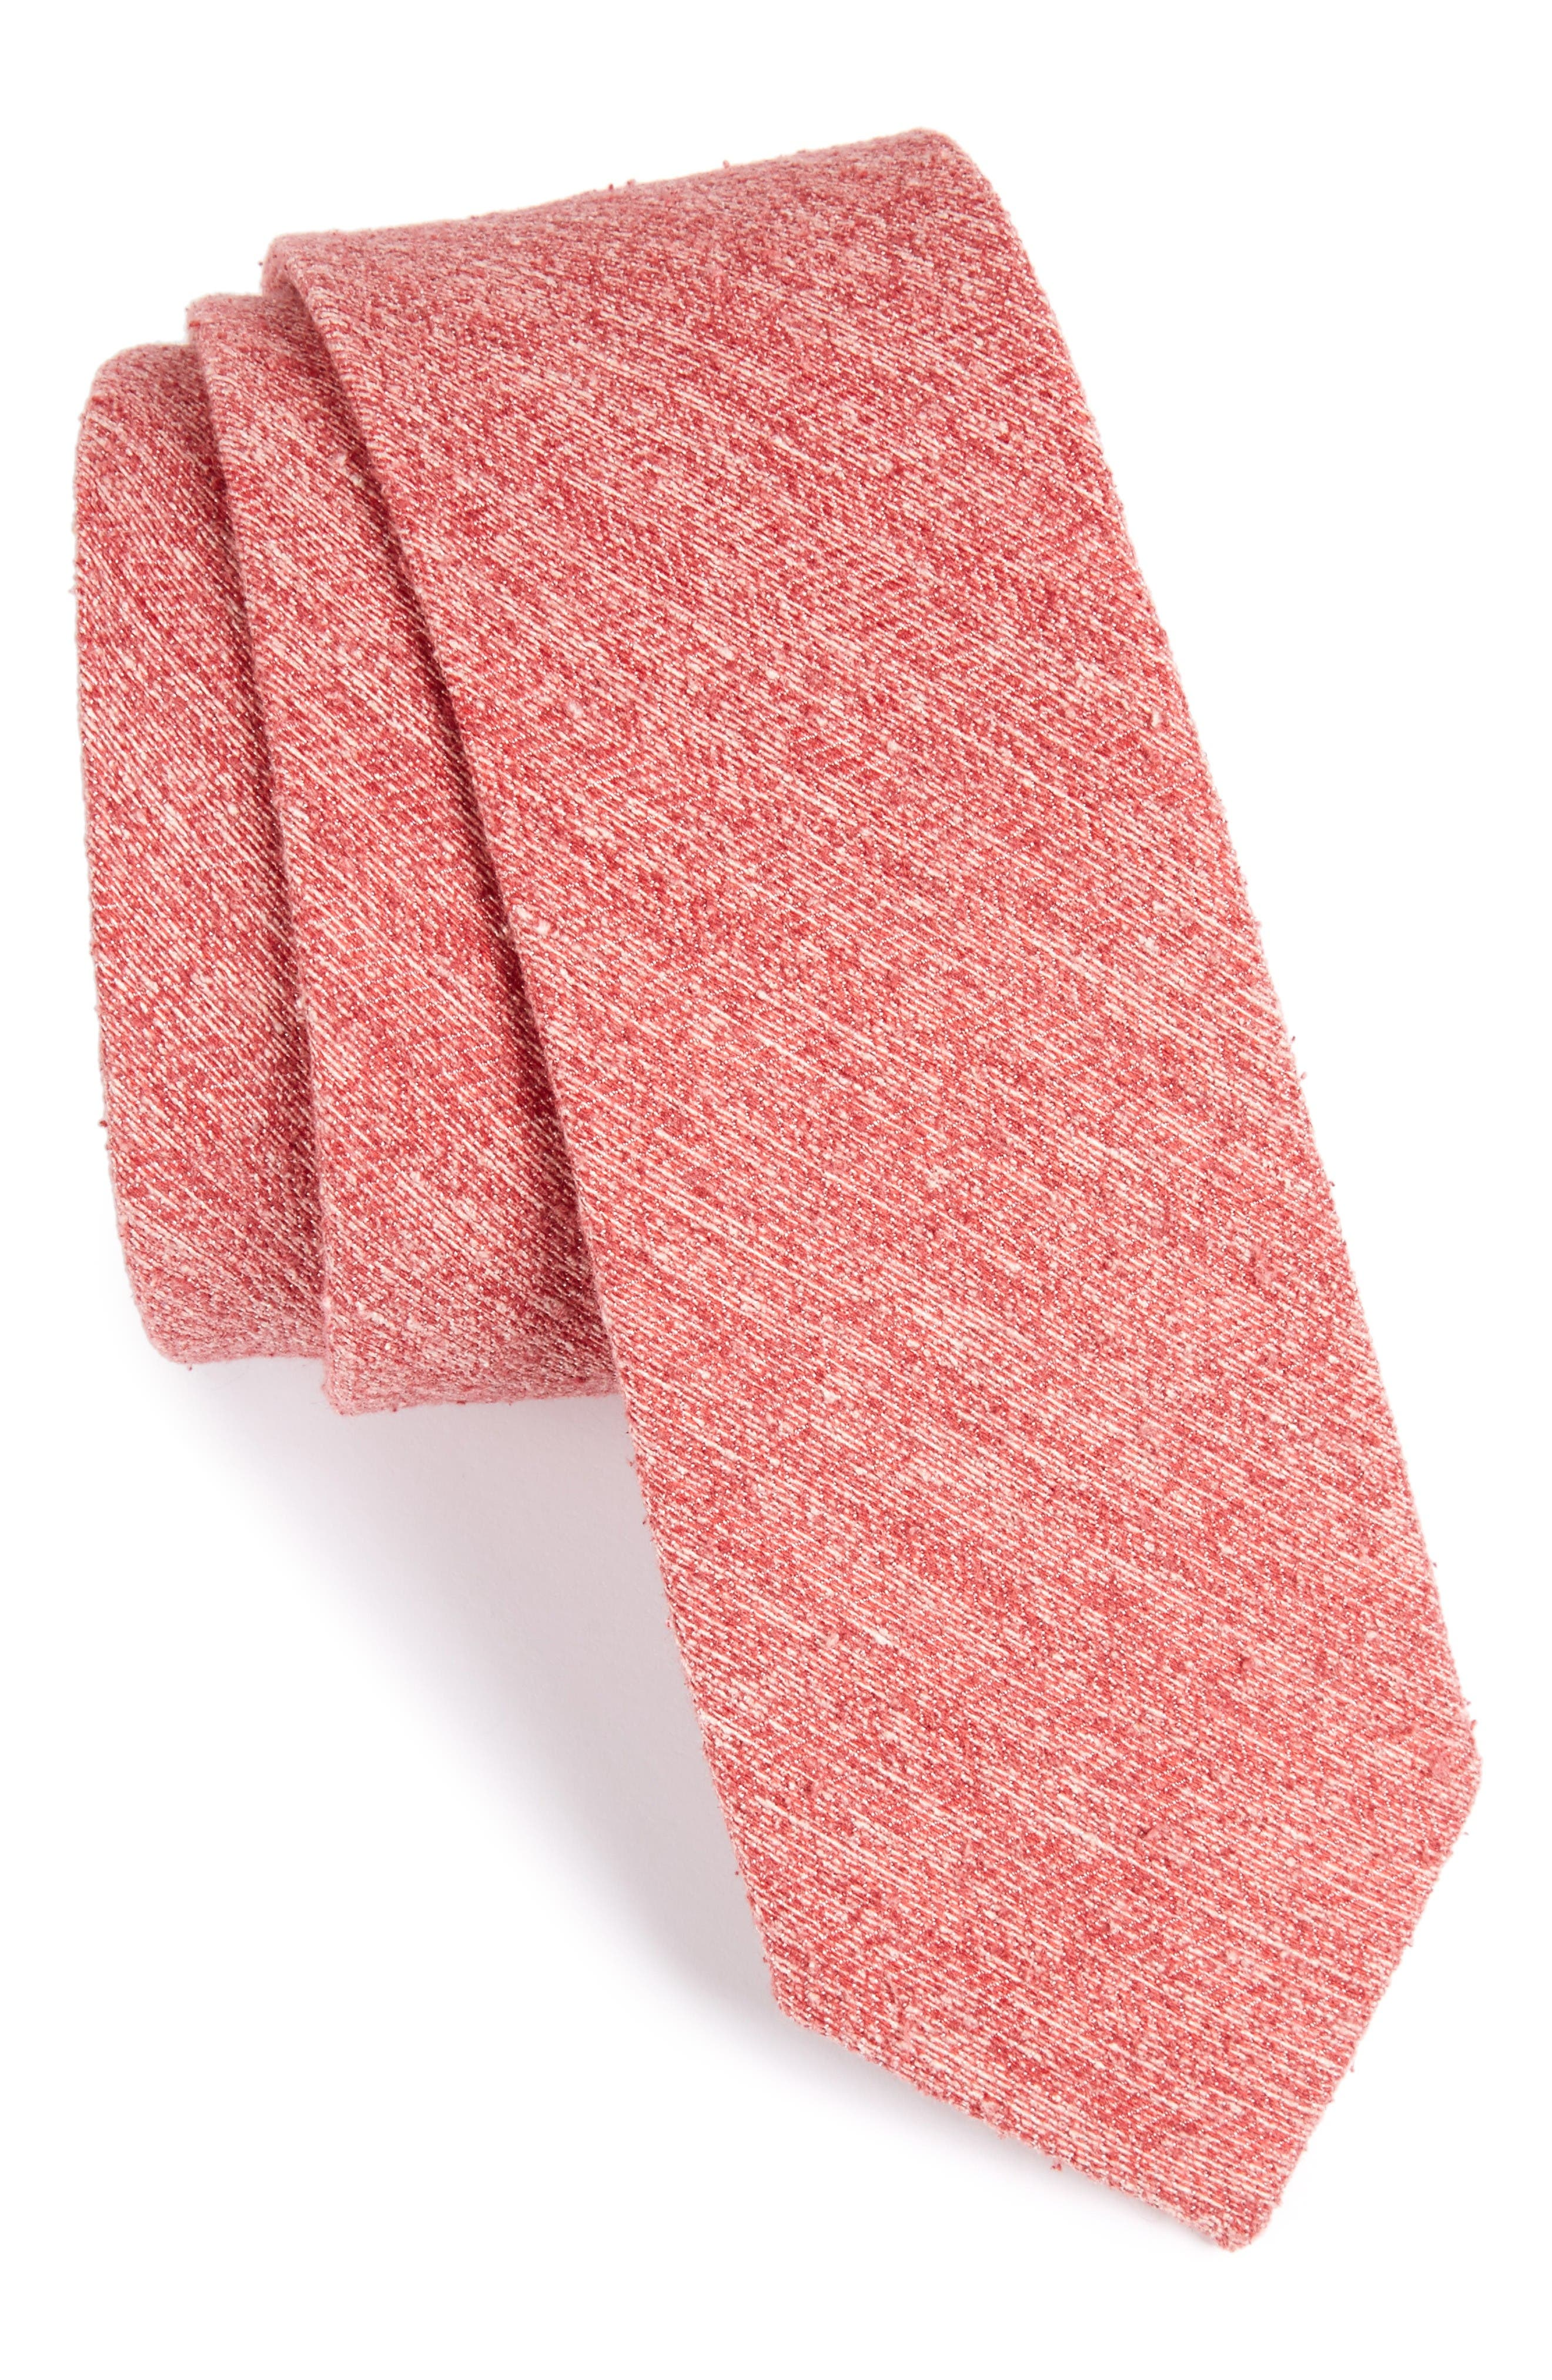 Buff Solid Silk Skinny Tie,                             Main thumbnail 1, color,                             Red